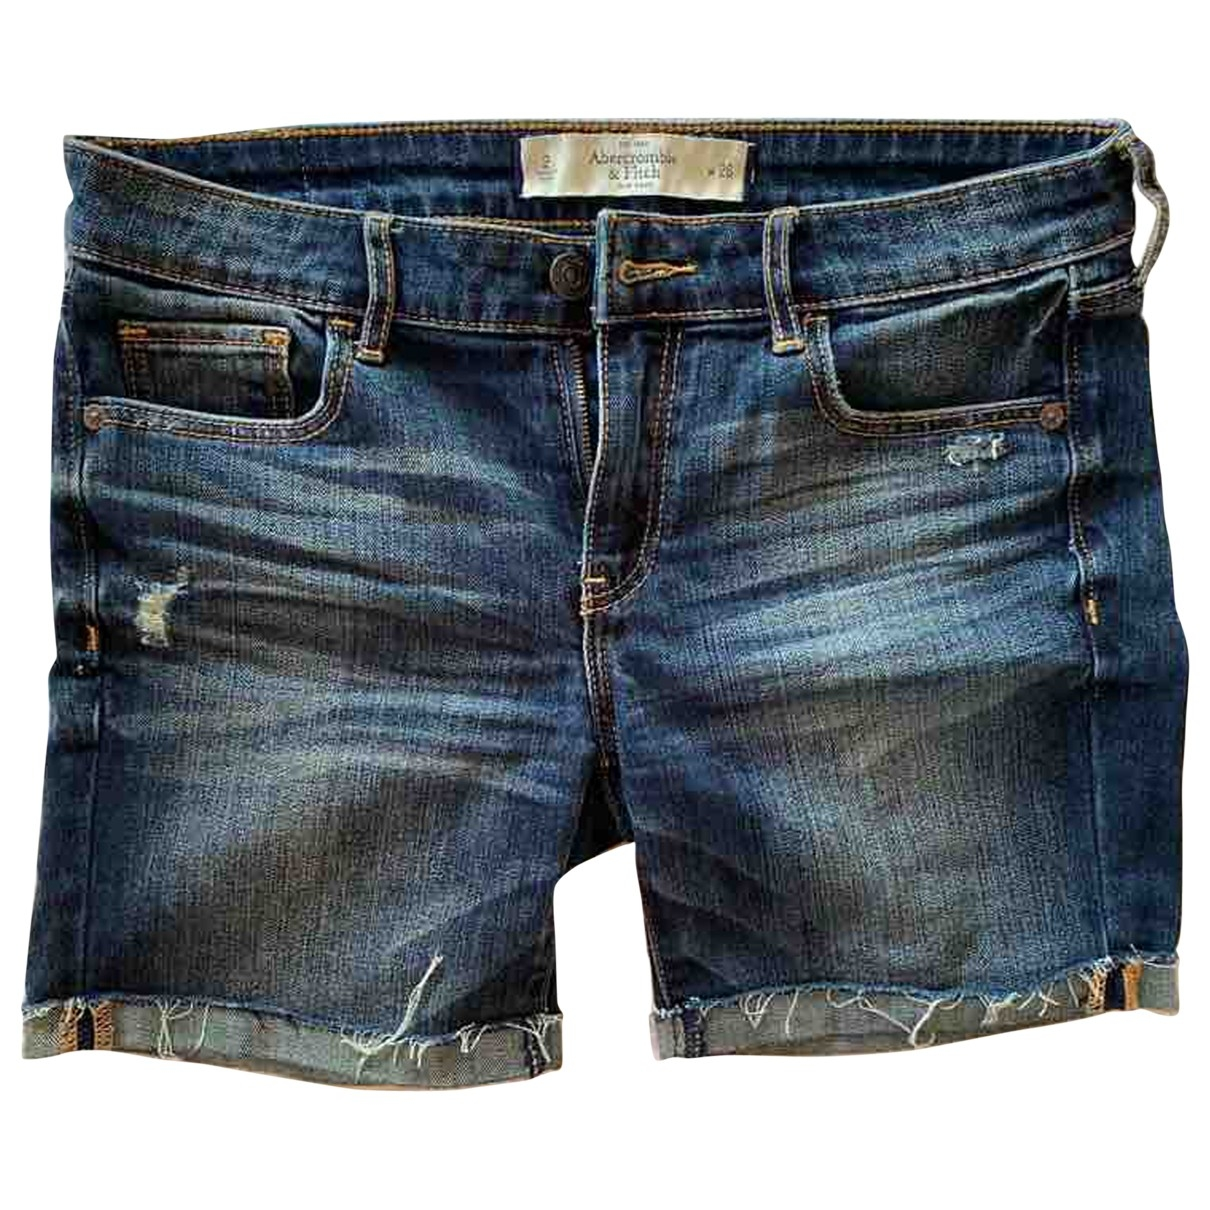 Abercrombie & Fitch \N Blue Denim - Jeans Shorts for Women 2 US